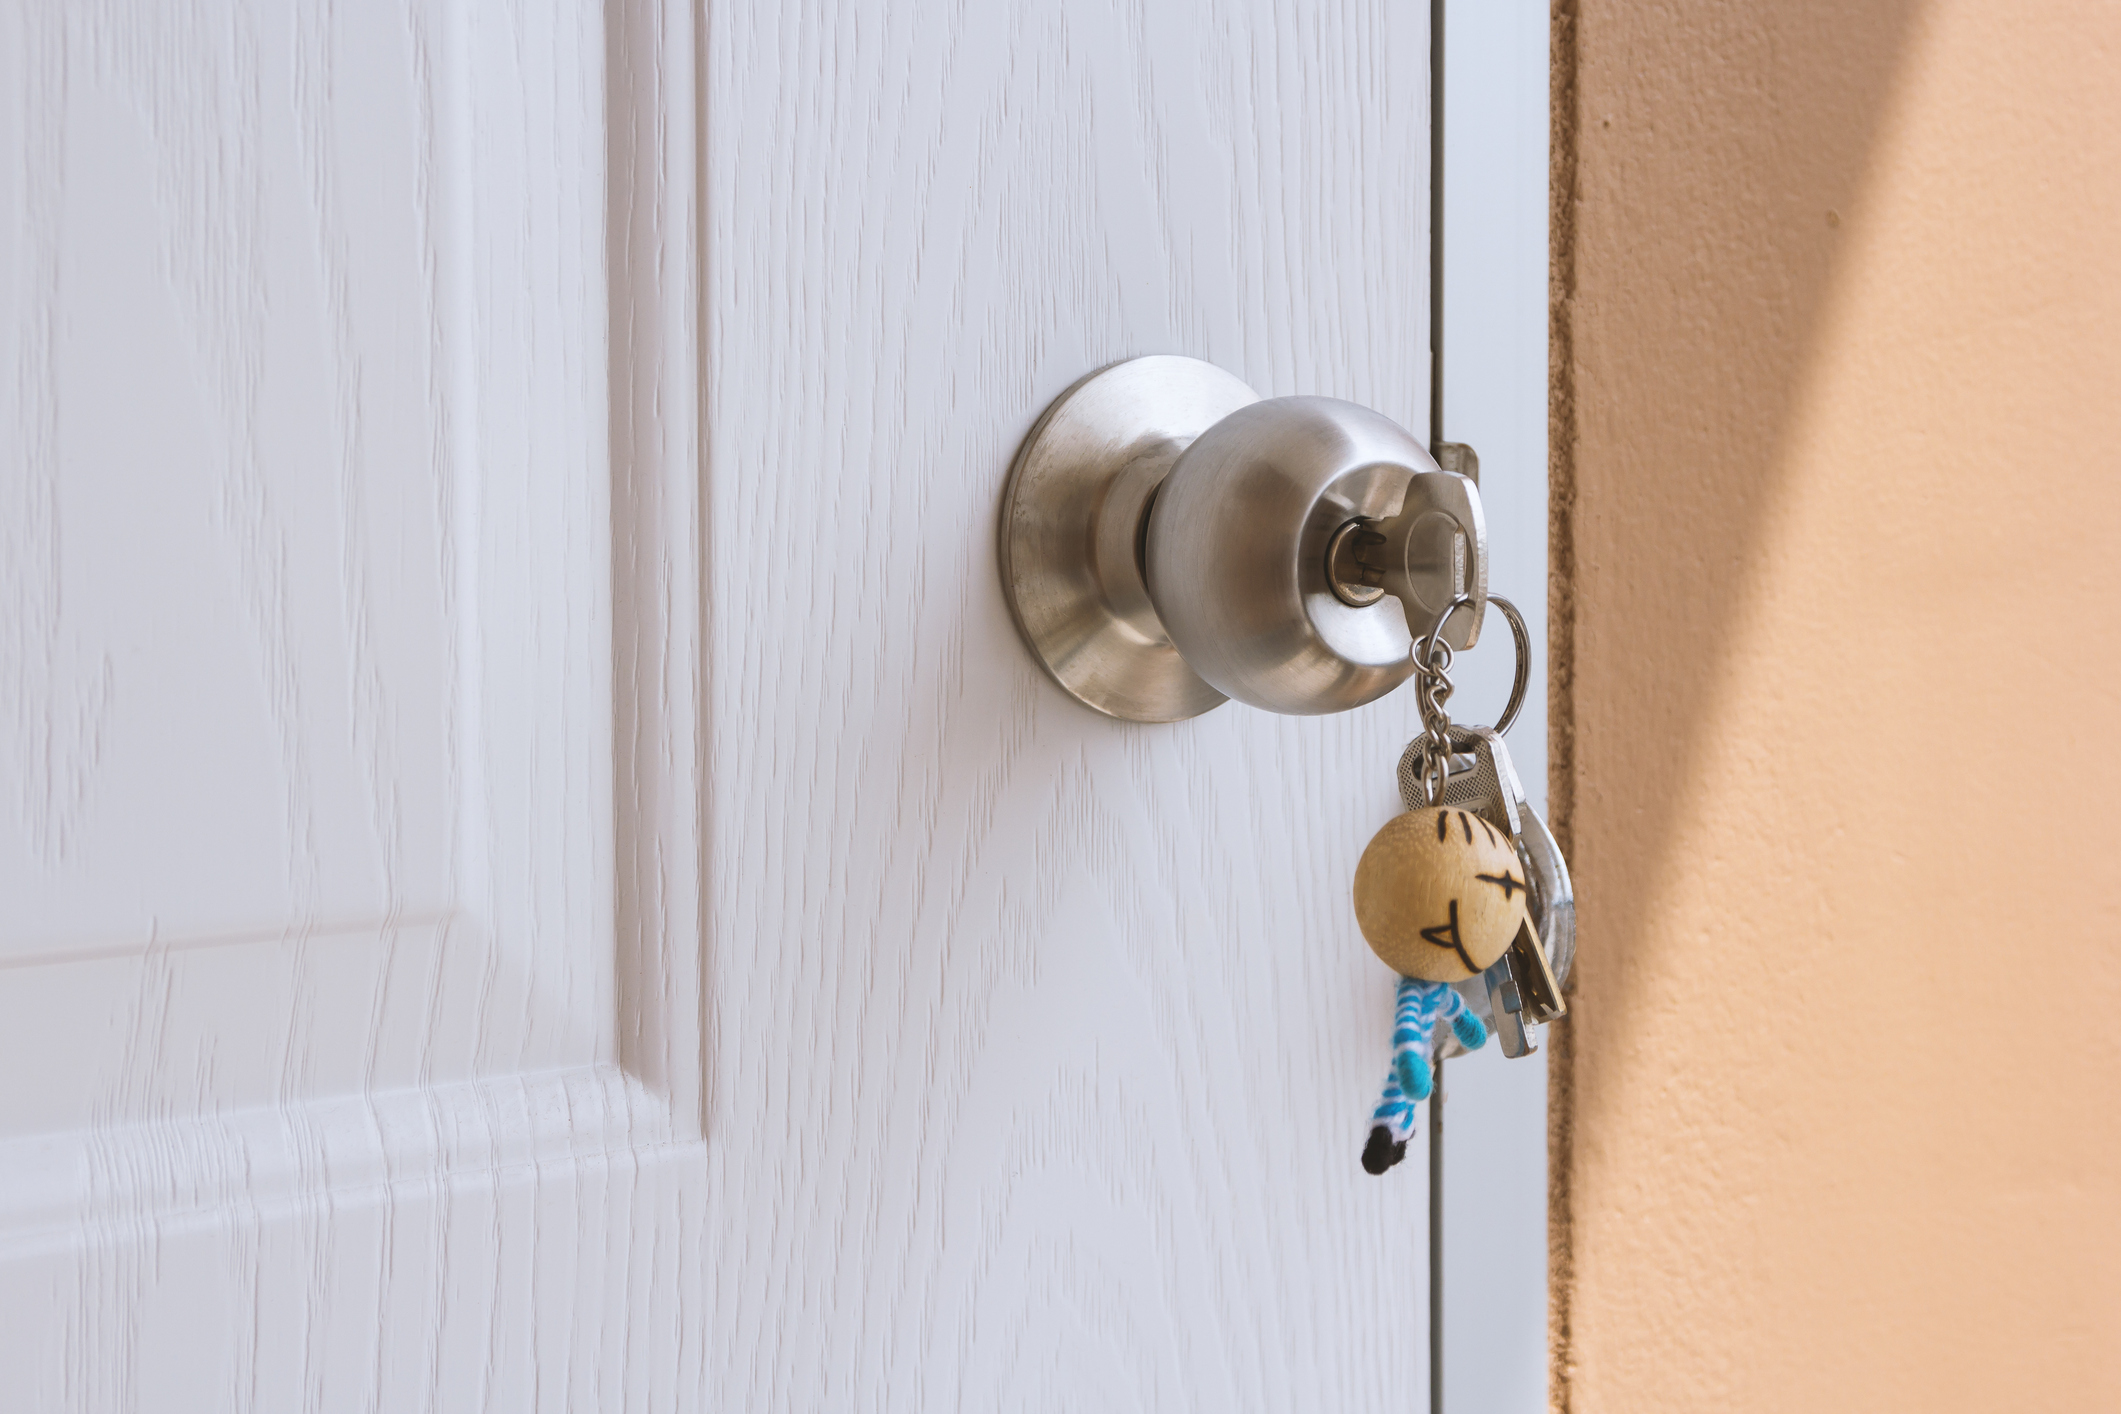 Keys in a door (Thinkstock/PA)